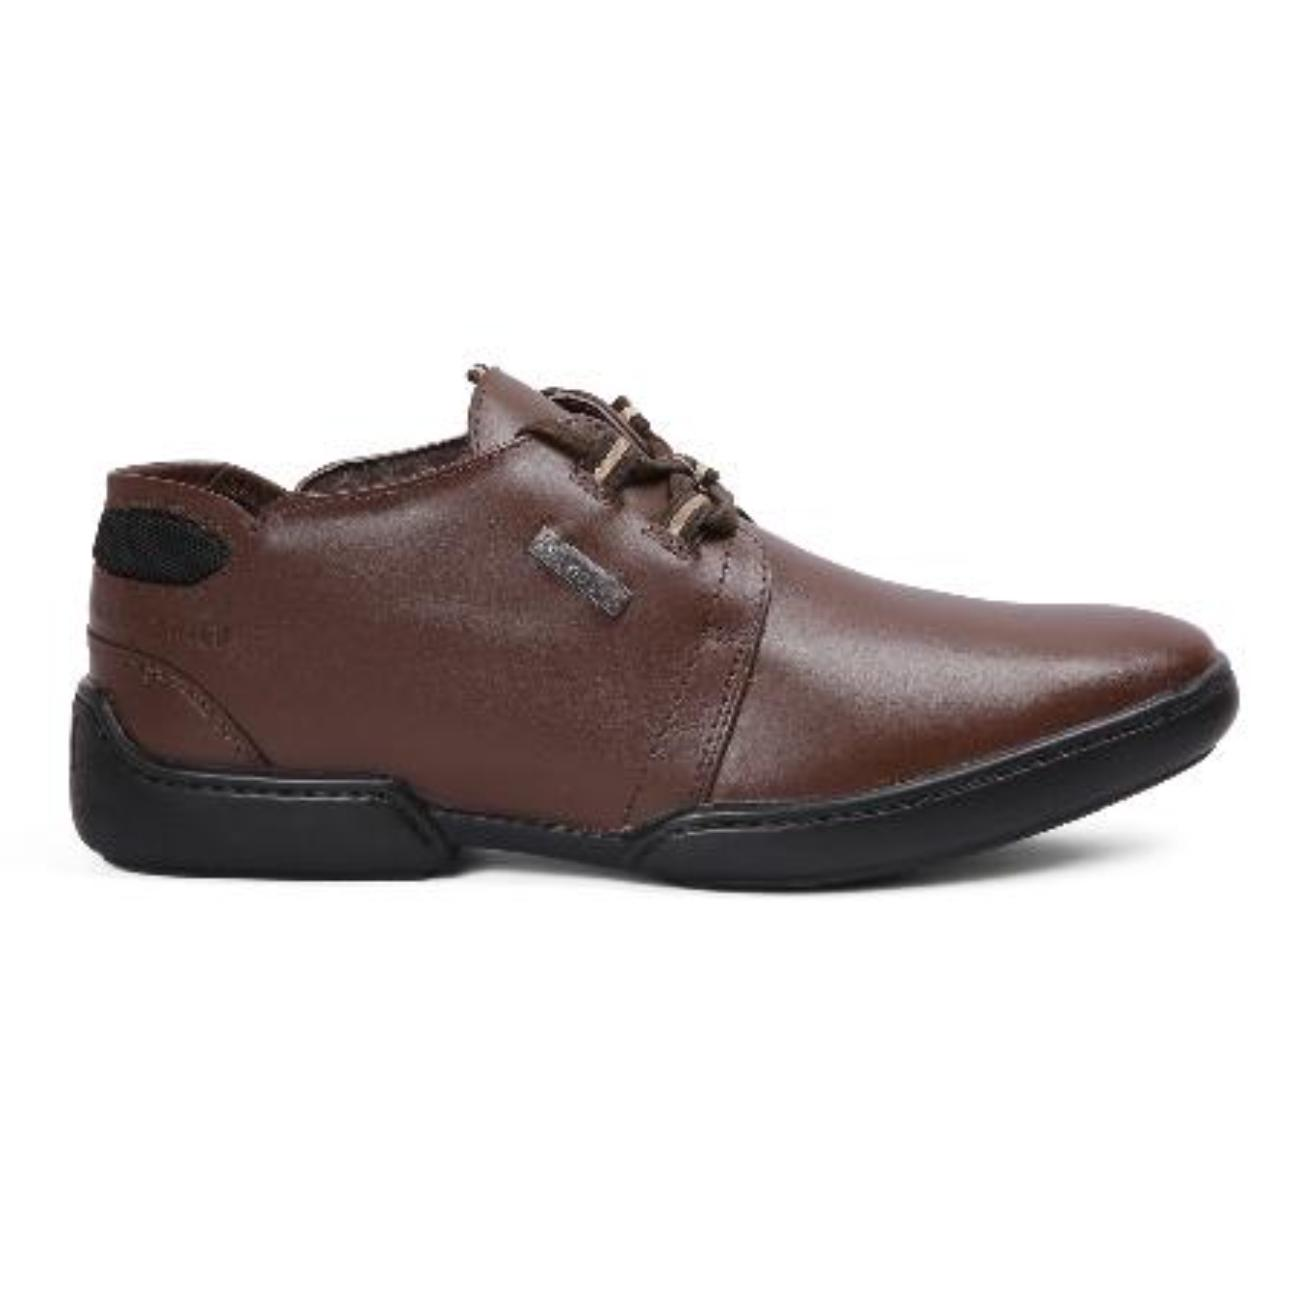 buy brown casual leather shoes side view_1